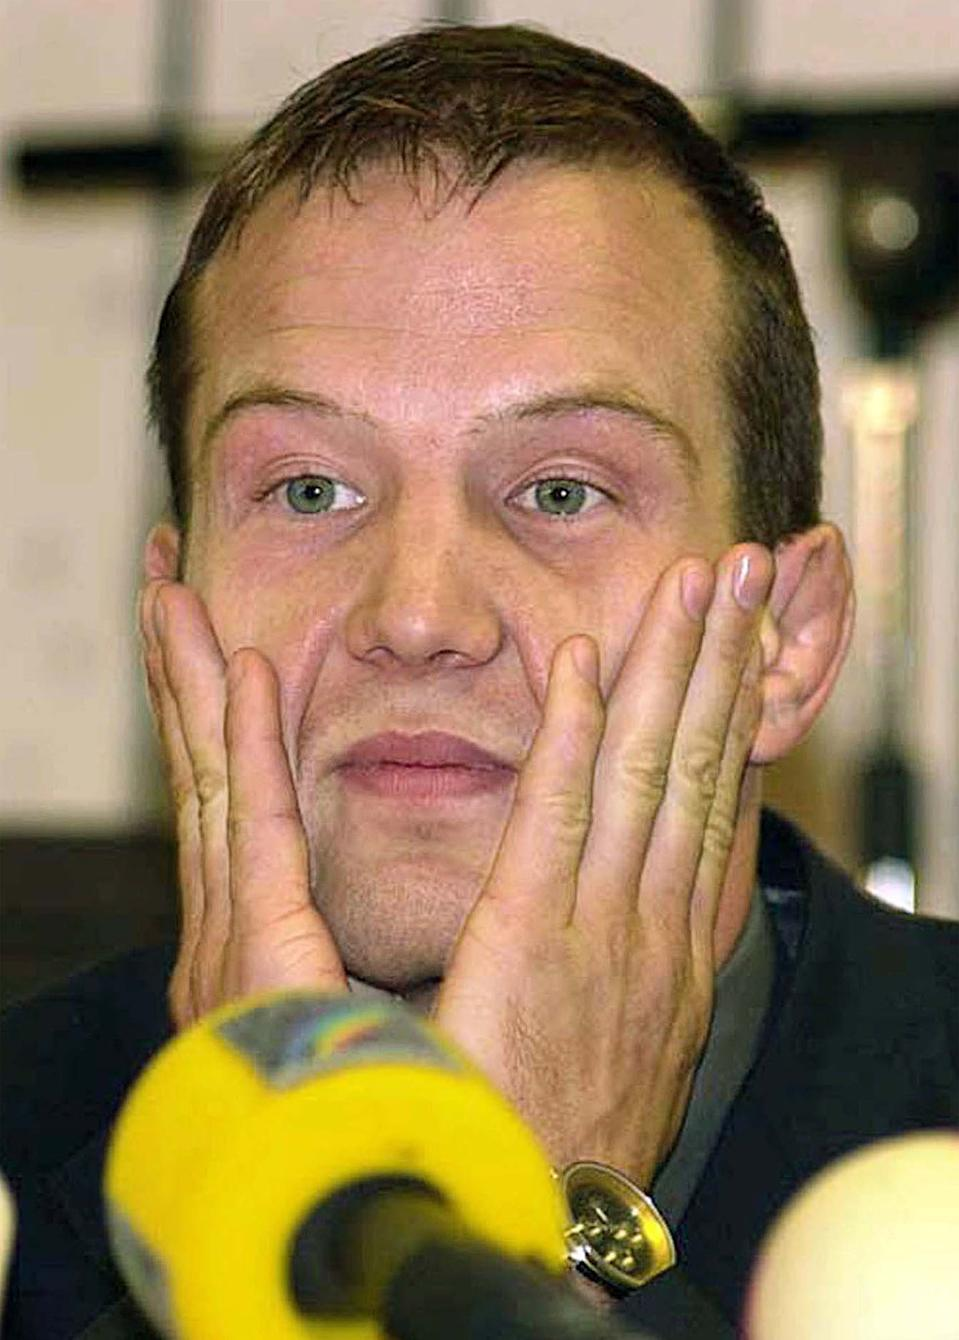 German wrestler Alexander Leipold didn't even medal in 1988, 1992 or 1996, so when he won the gold medal at the 2000 Sydney Games in the freestyle tournament, it was bound to raise red flags. Drug tests showed that Leipold's blood contained metabolites associated with anabolic steroids, and he was subsequently stripped of his gold medal. (AP PHOTO/FOTO KUNZ/RALF MORAY)